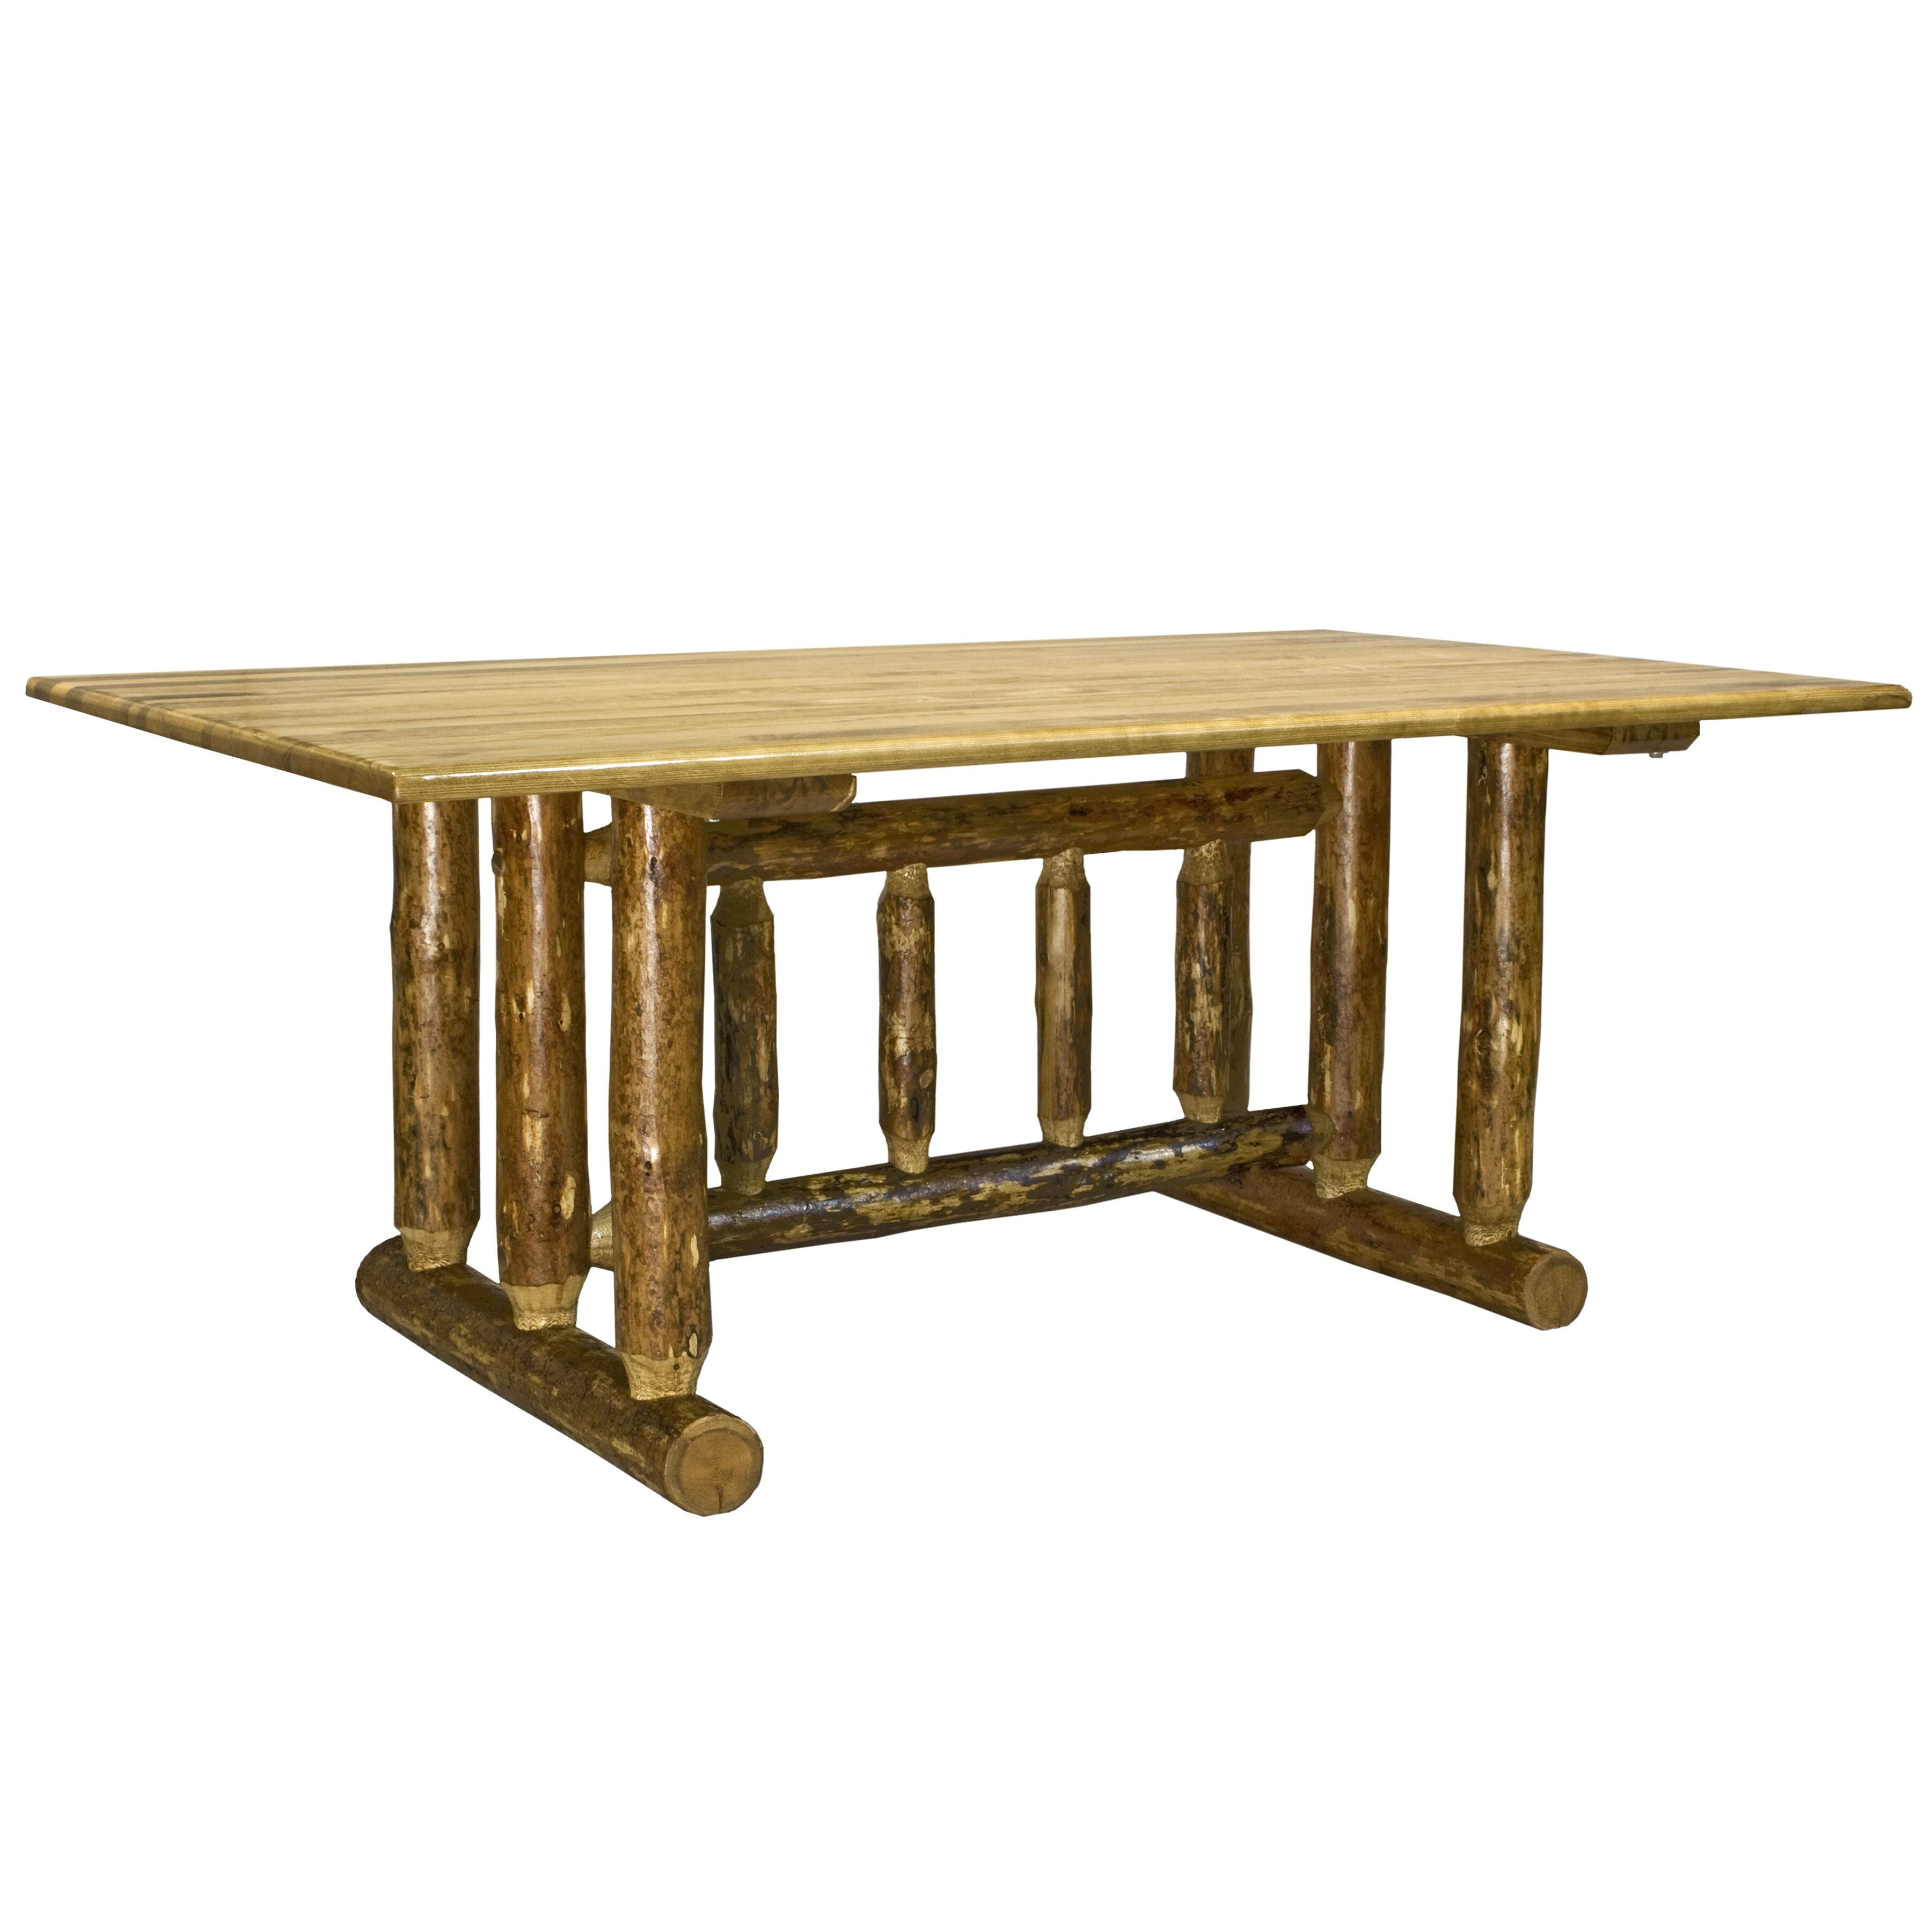 Montana woodworks glacier country trestle dining table for Trestle dining table